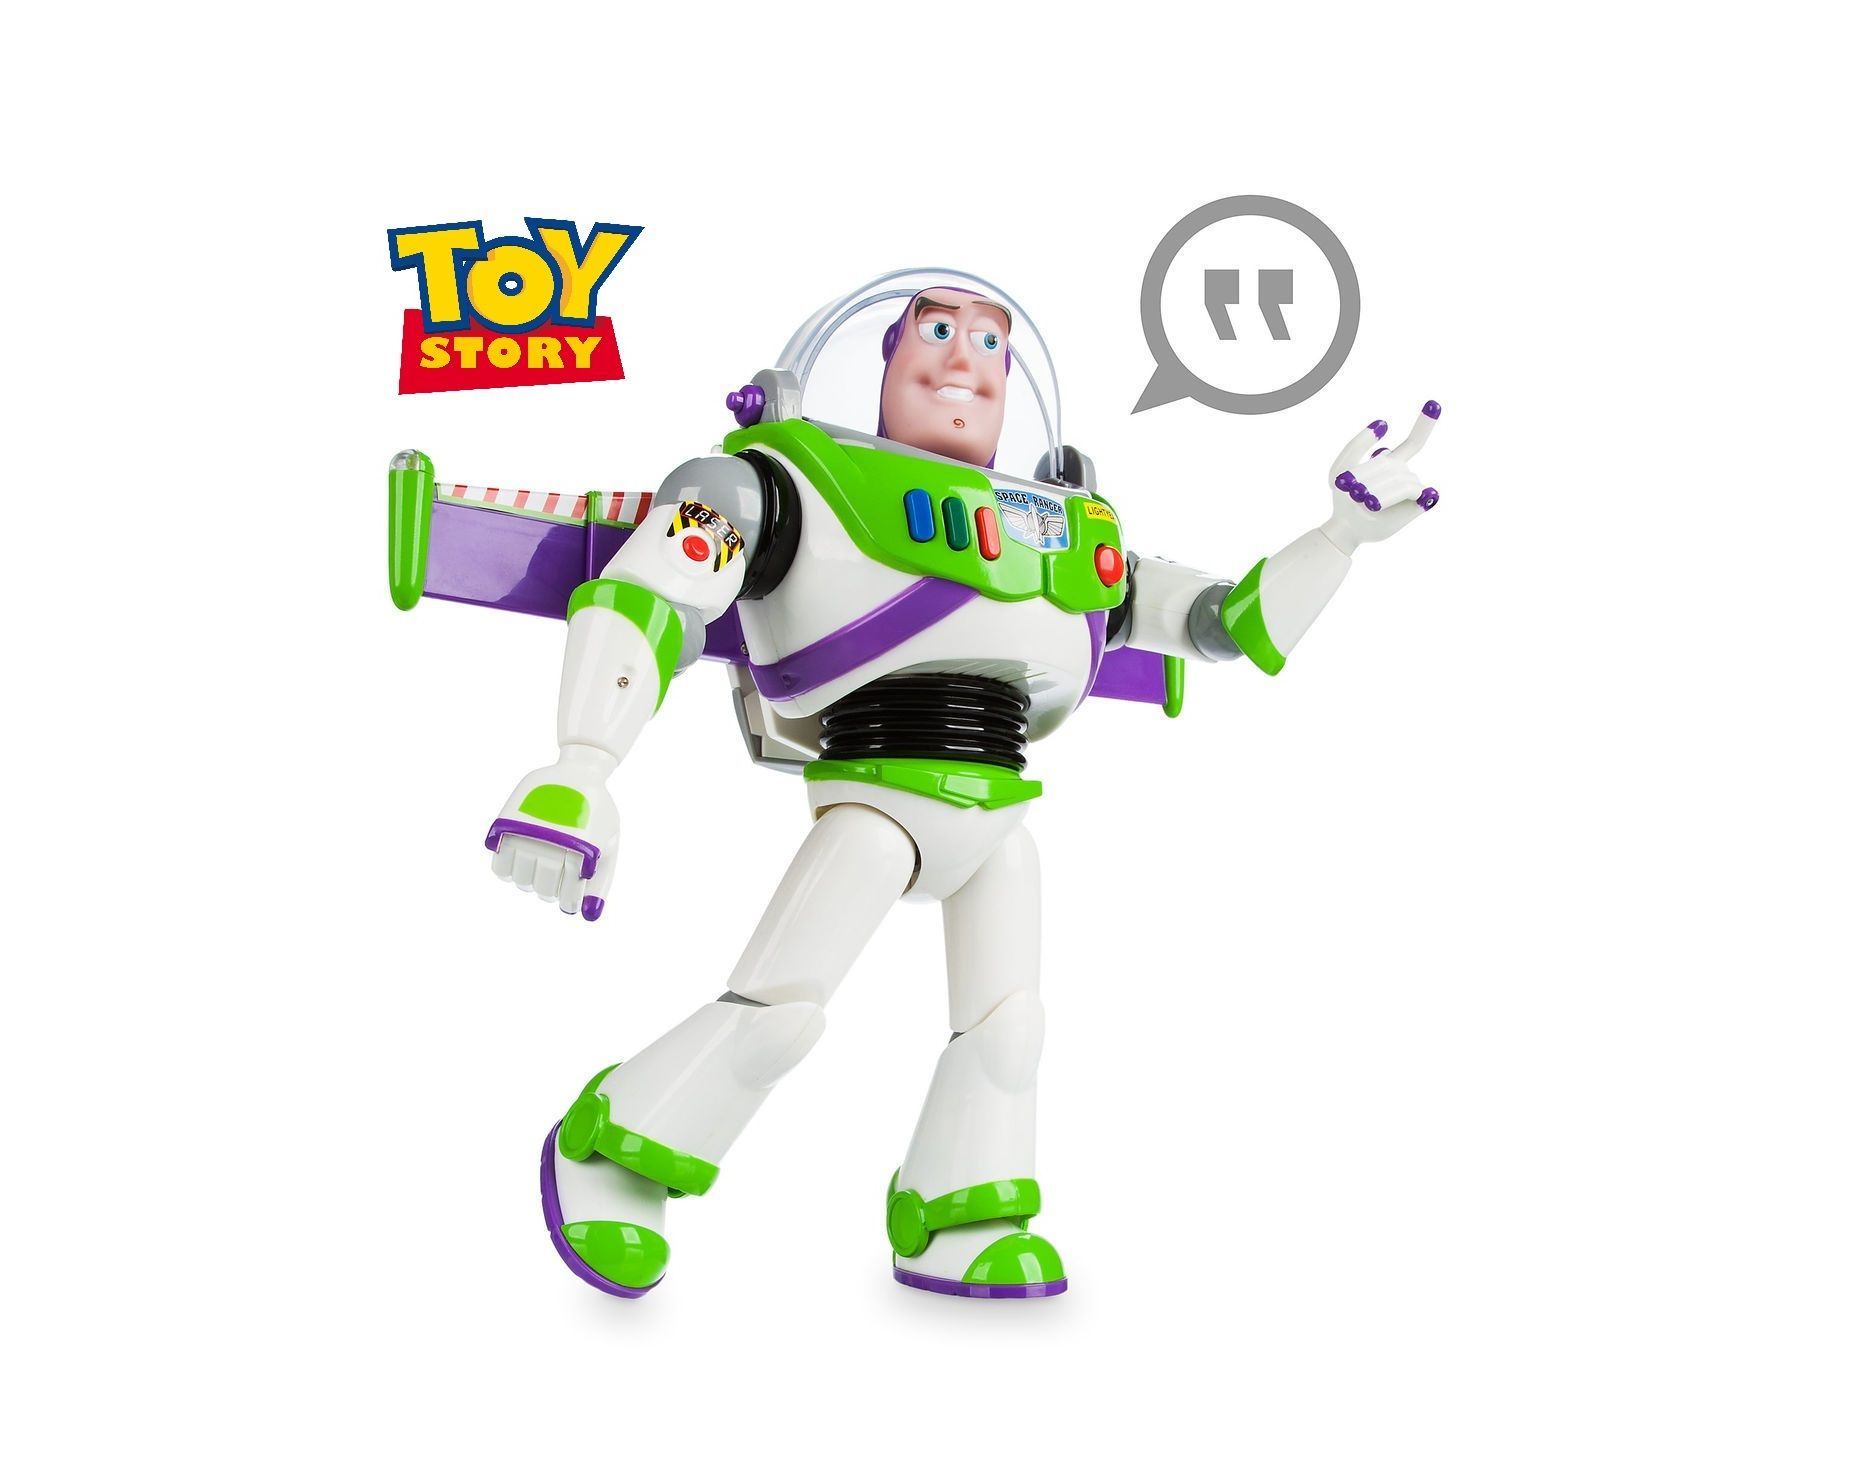 Pin On Buzz Lightyear Toy Story Action Figure